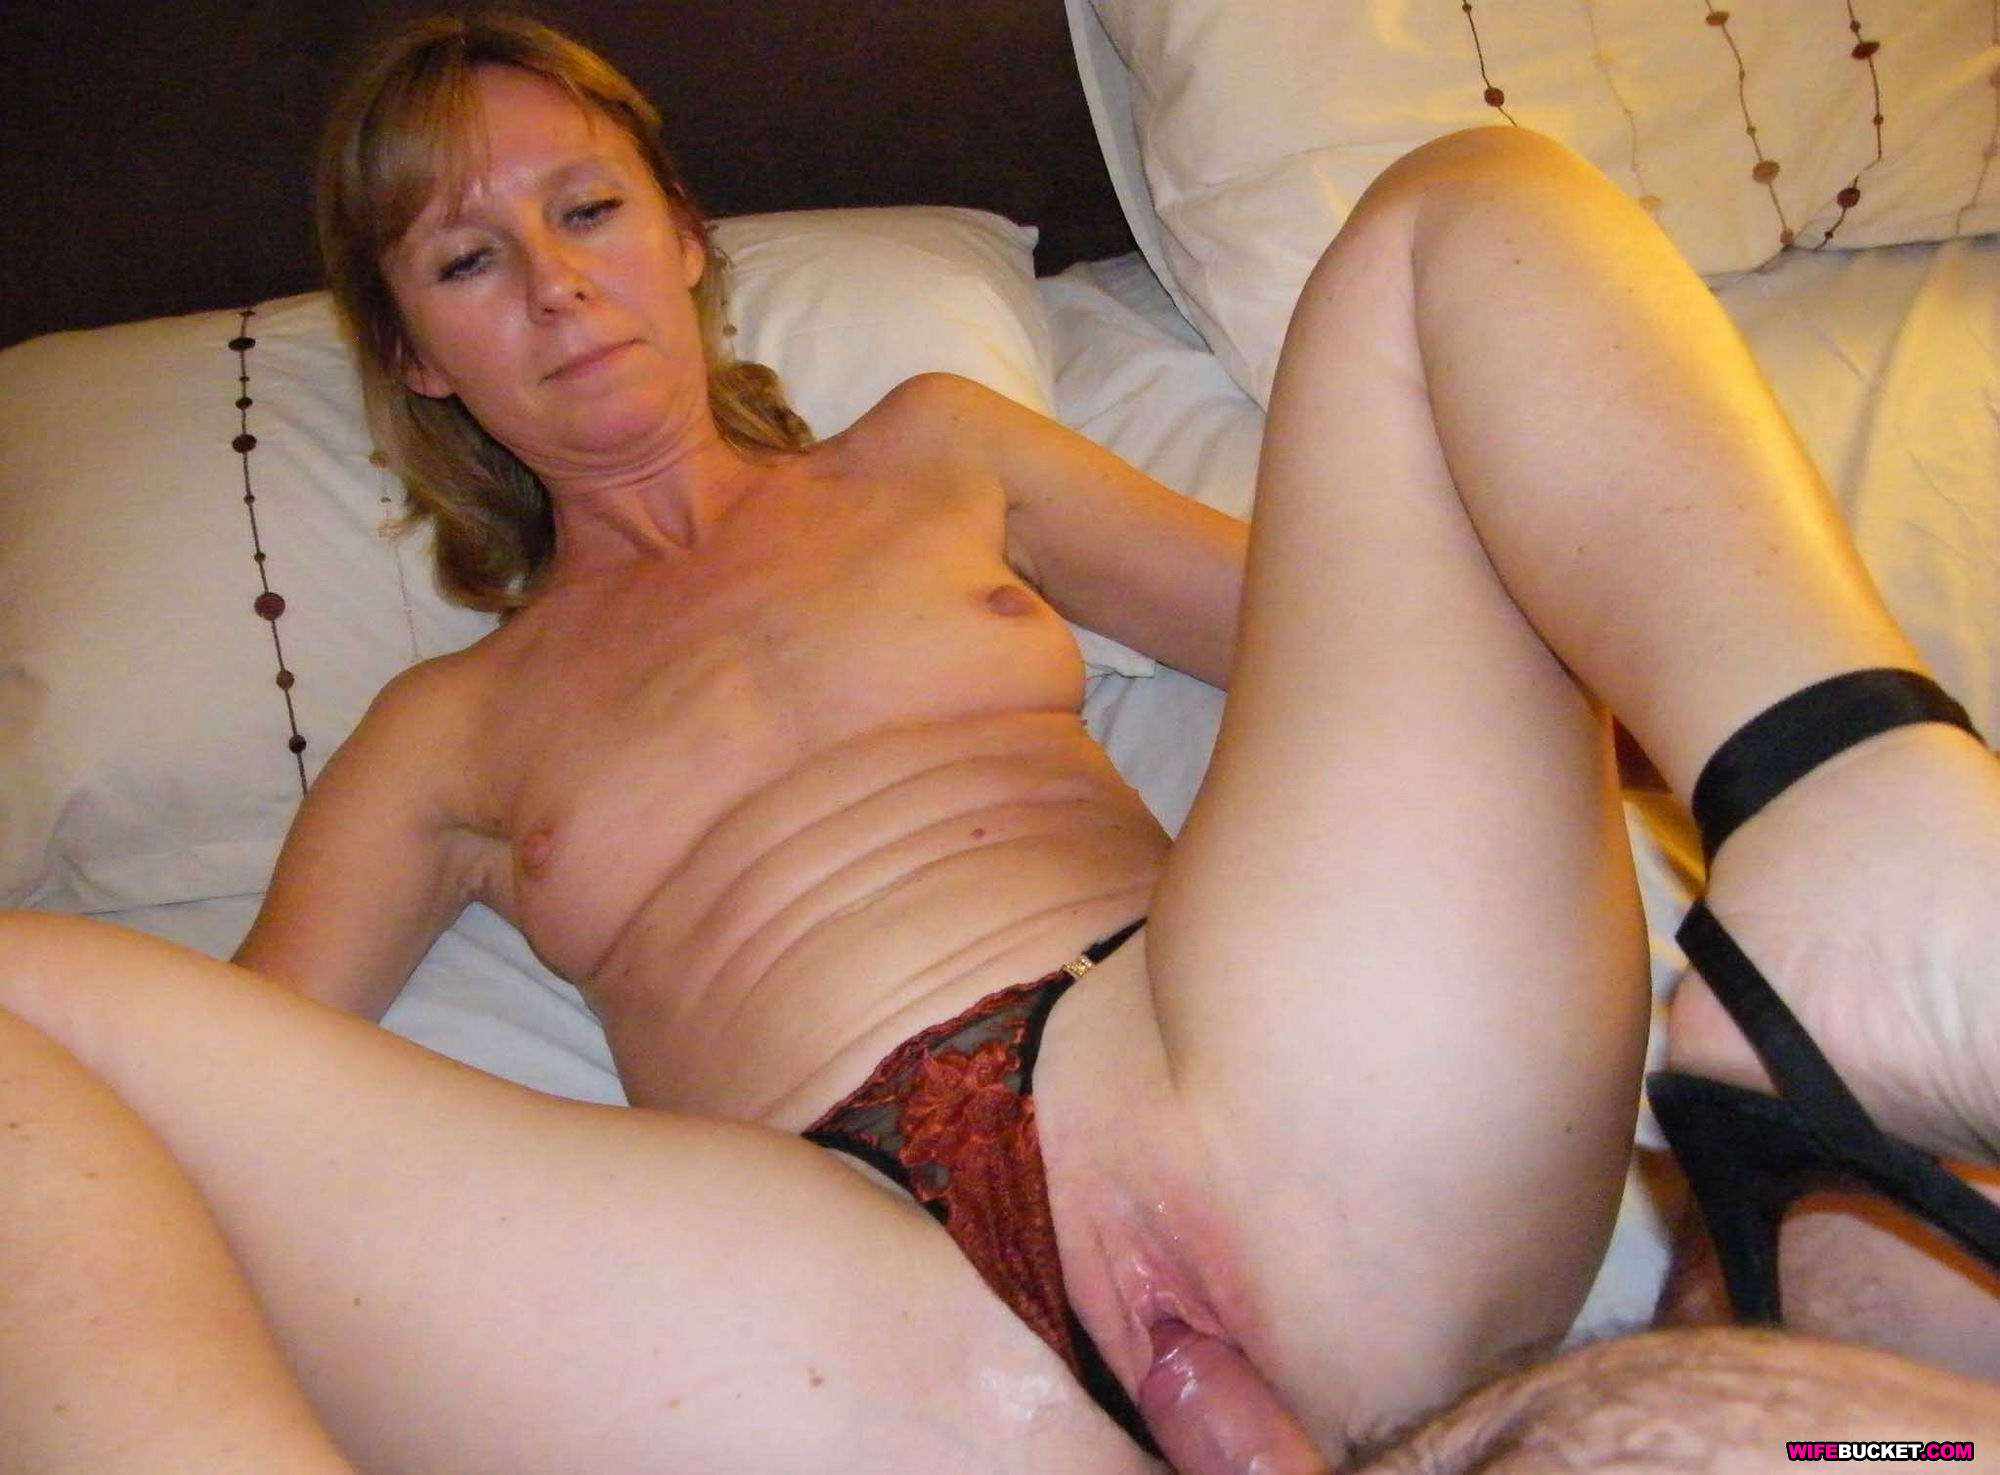 Slut mature cheating wife sucking my cock during vacation 5